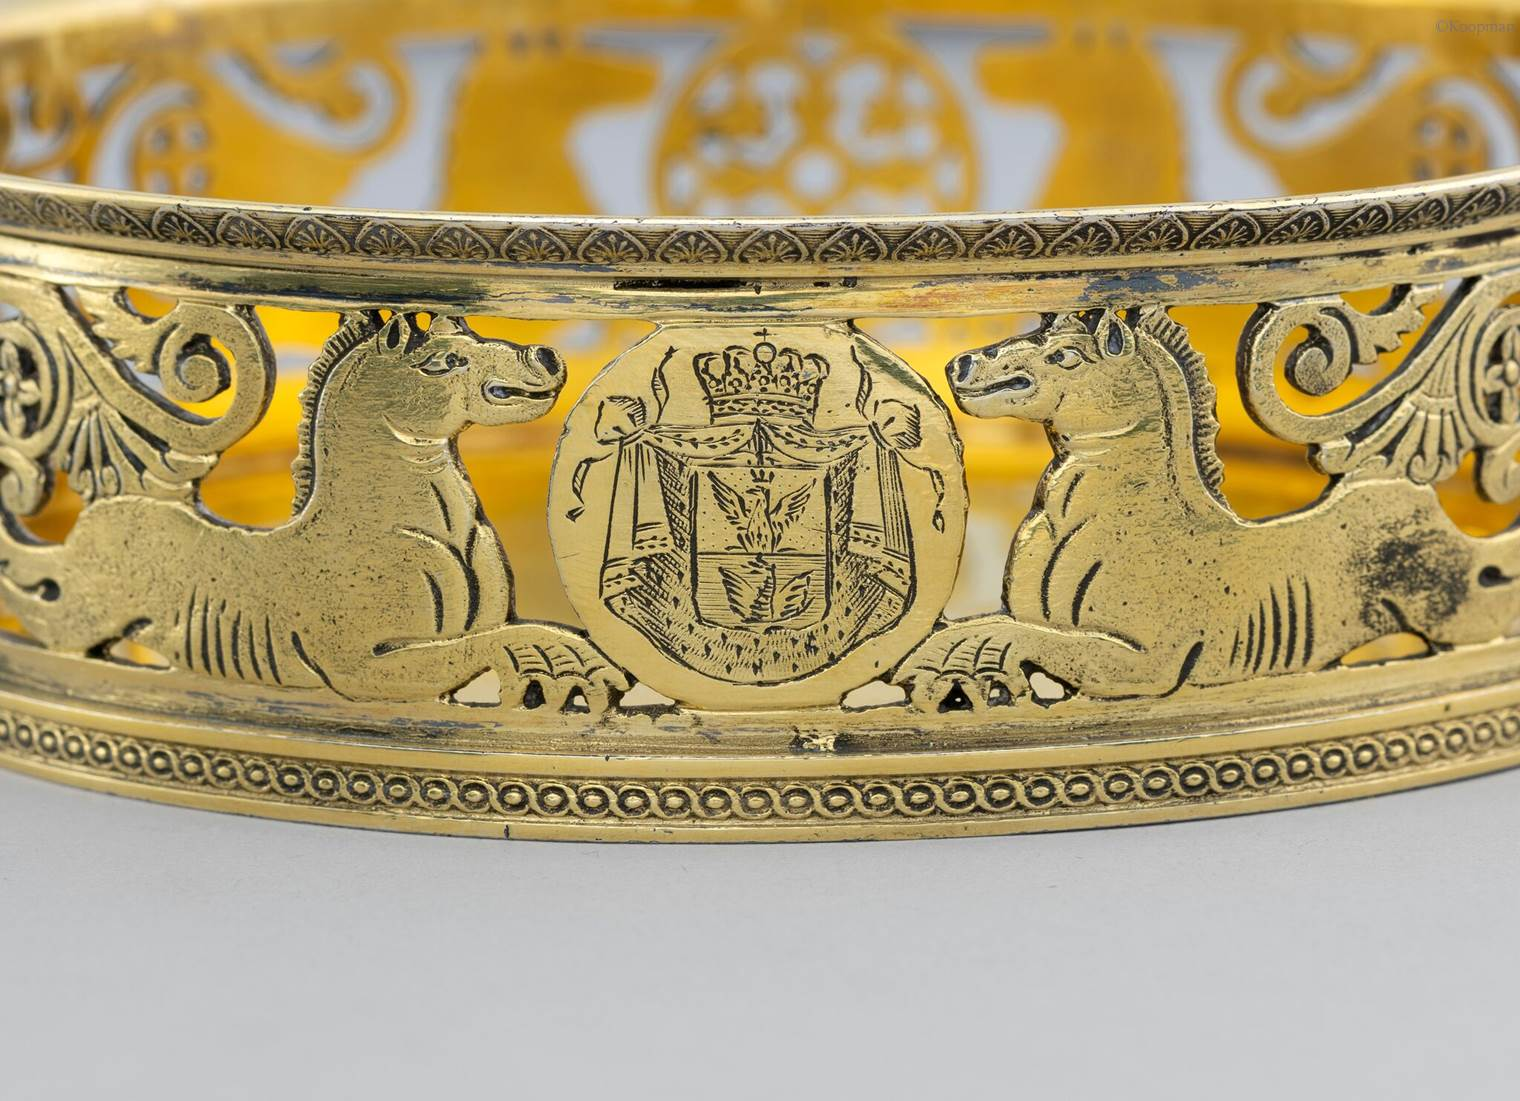 A PAIR OF ITALIAN SILVER-GILT WINE COASTERS  FROM THE BORGHESE SERVICE